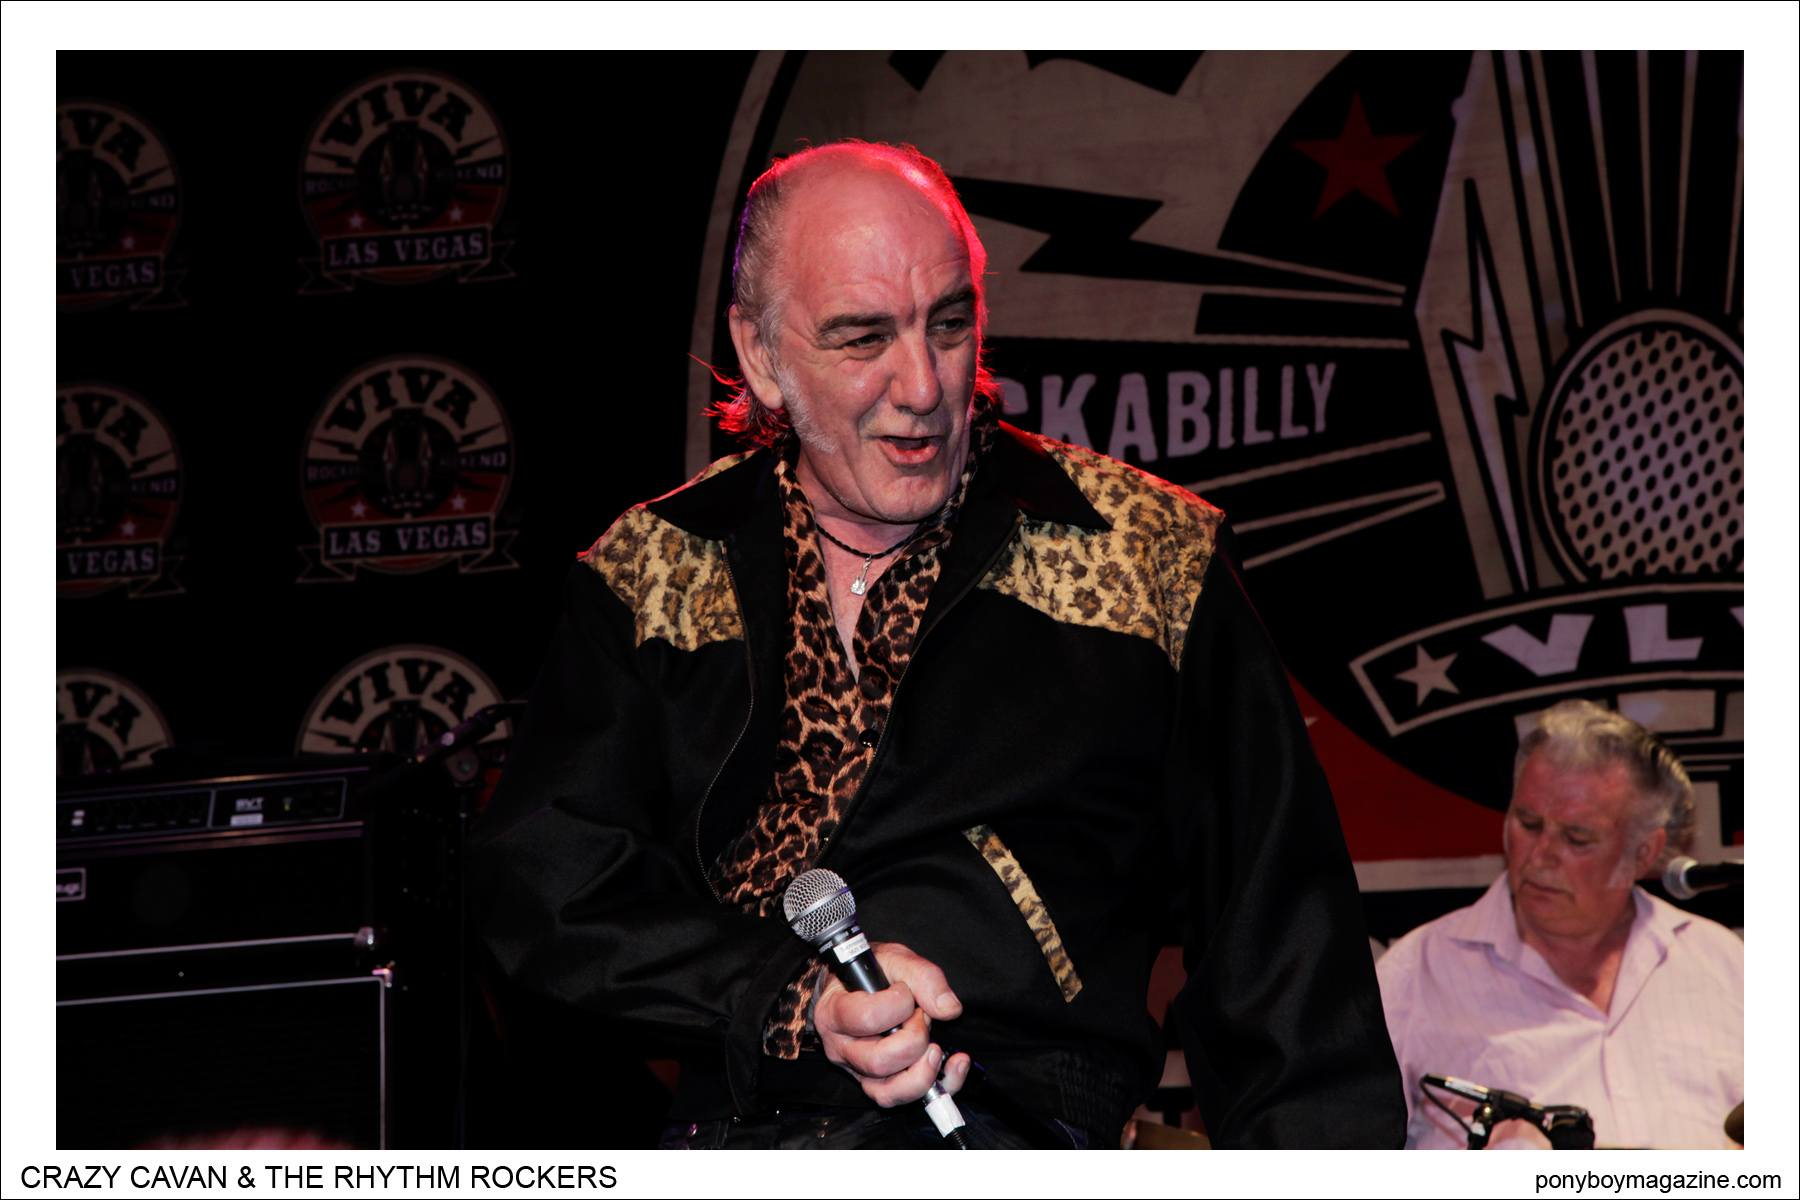 The legendary Crazy Cavan and The Rhythm Rockers at Tom Ingram's Viva Las Vegas 17 rockabilly weekender. Photograph taken by Alexander Thompson for Ponyboy Magazine.